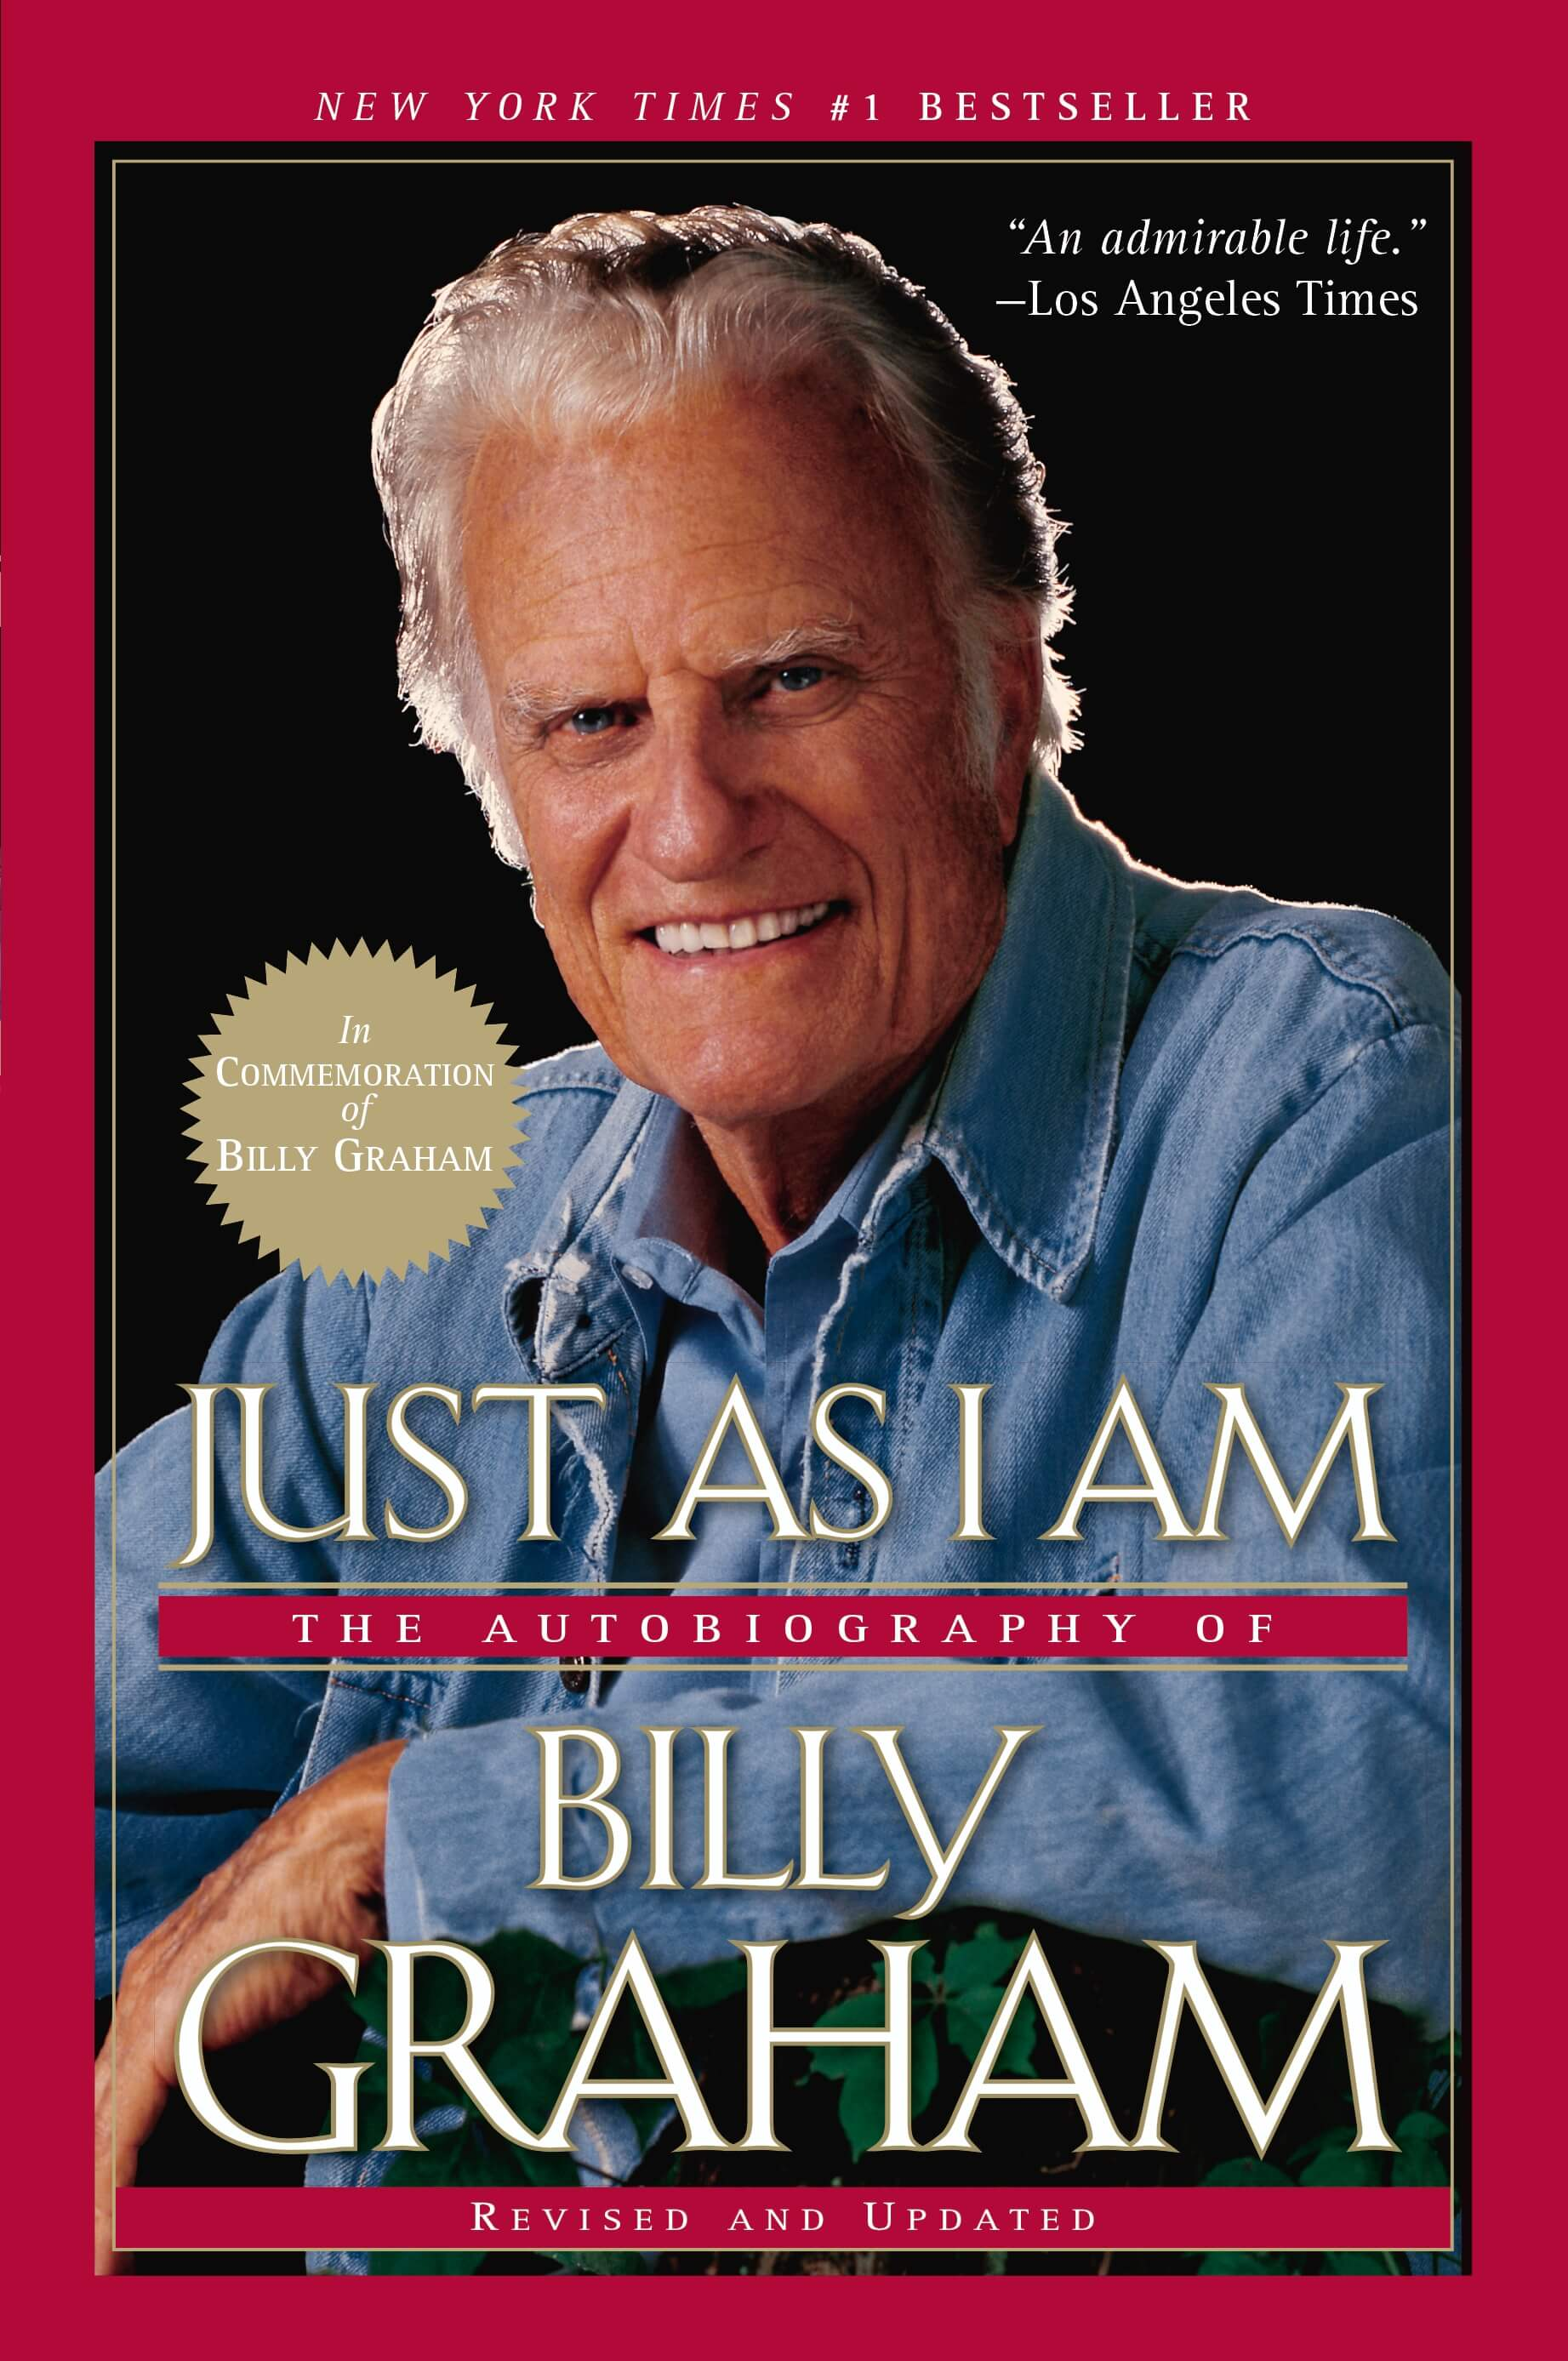 Buy your copy of Just As I Am: The Autobiography of Billy Graham, Revised and Updated in the Bible Gateway Store where you'll enjoy low prices every day